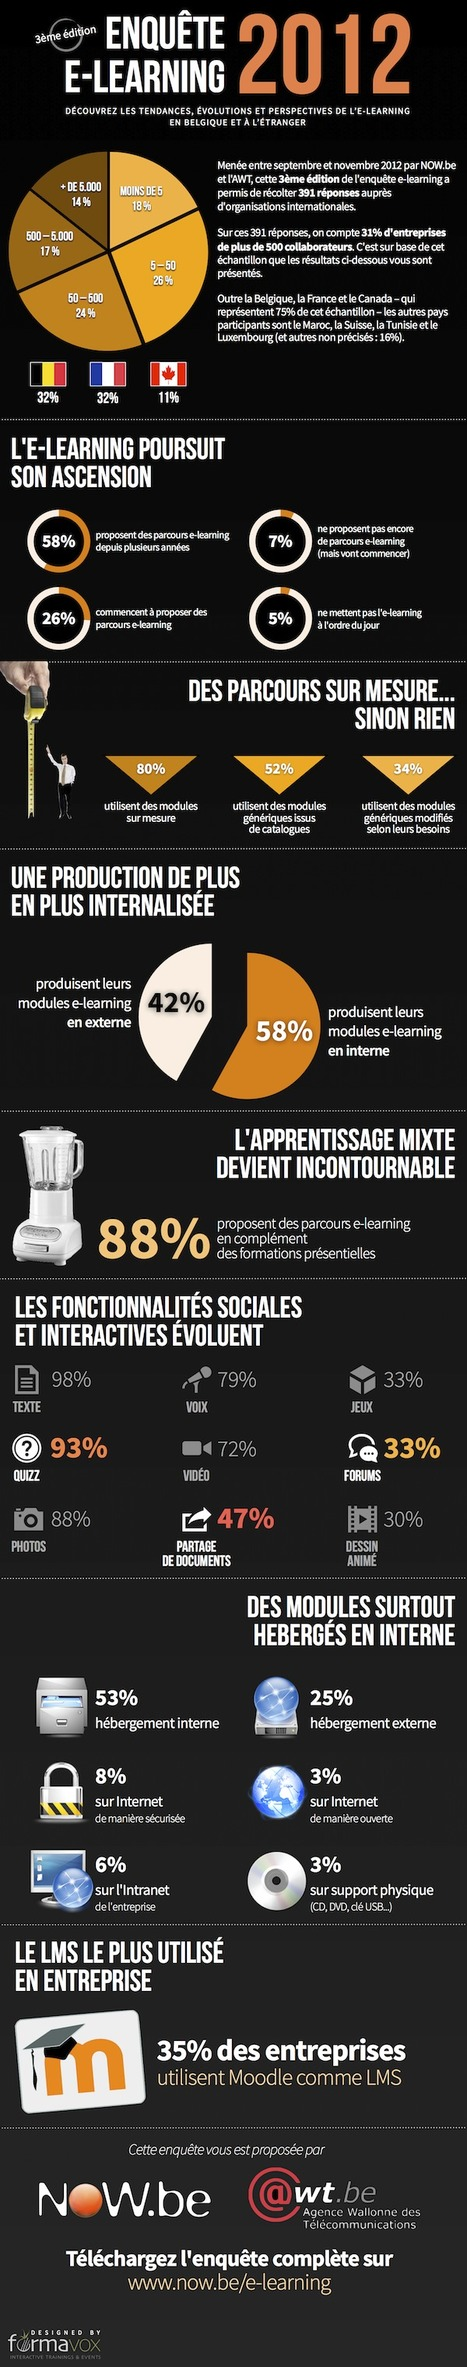 [Infographie] Enquête e-learning francophone 2012 ! | NOW.be | Scoop.it